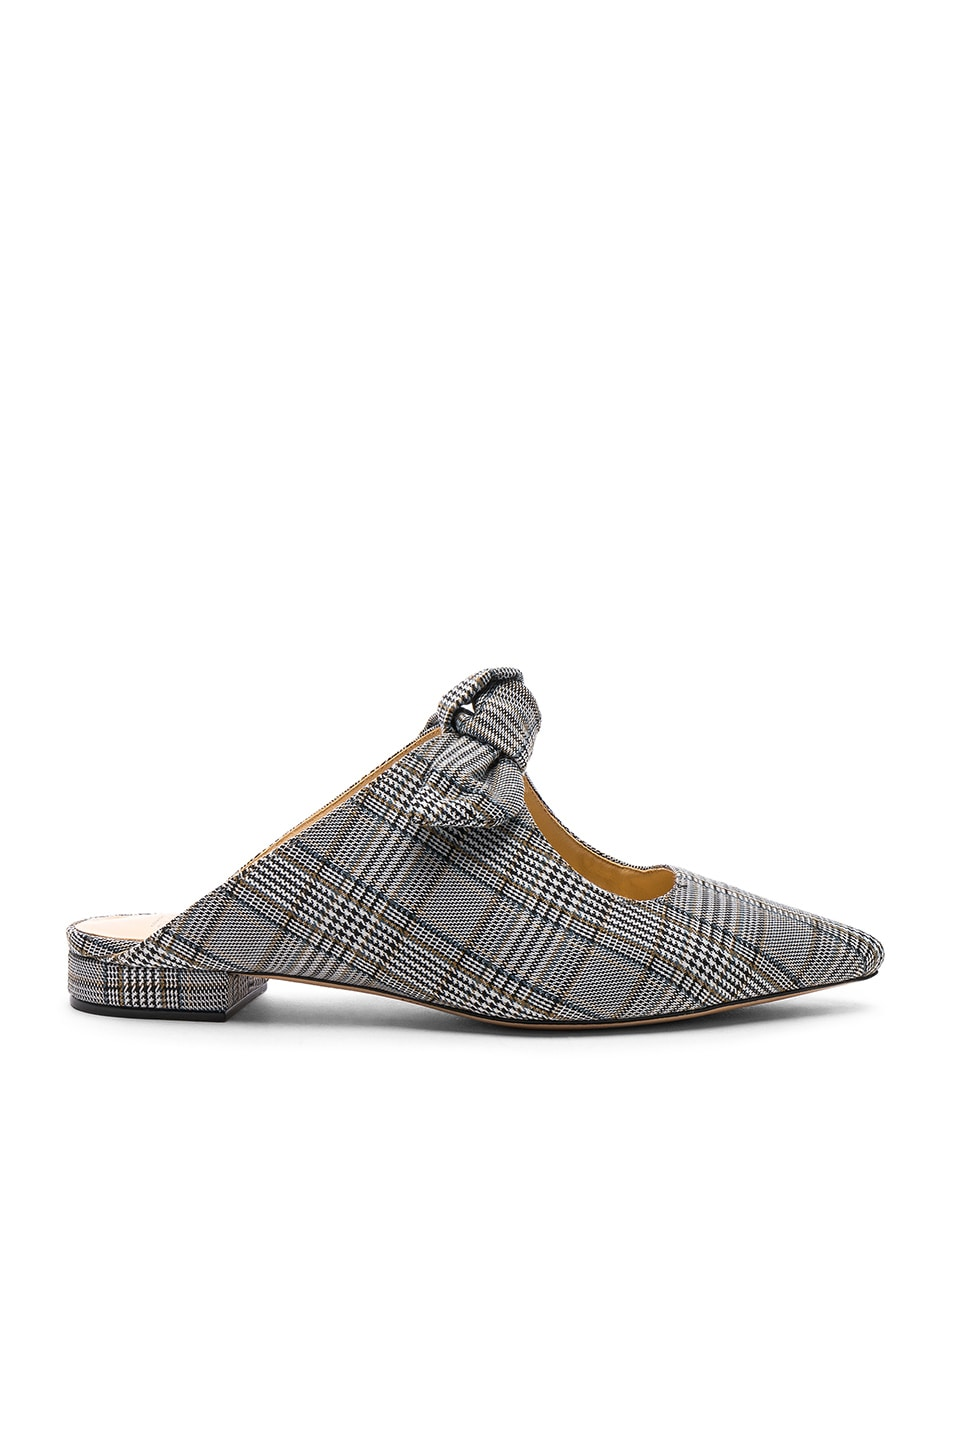 Alexandre Birman Plaid Evelyn Flats Off White new